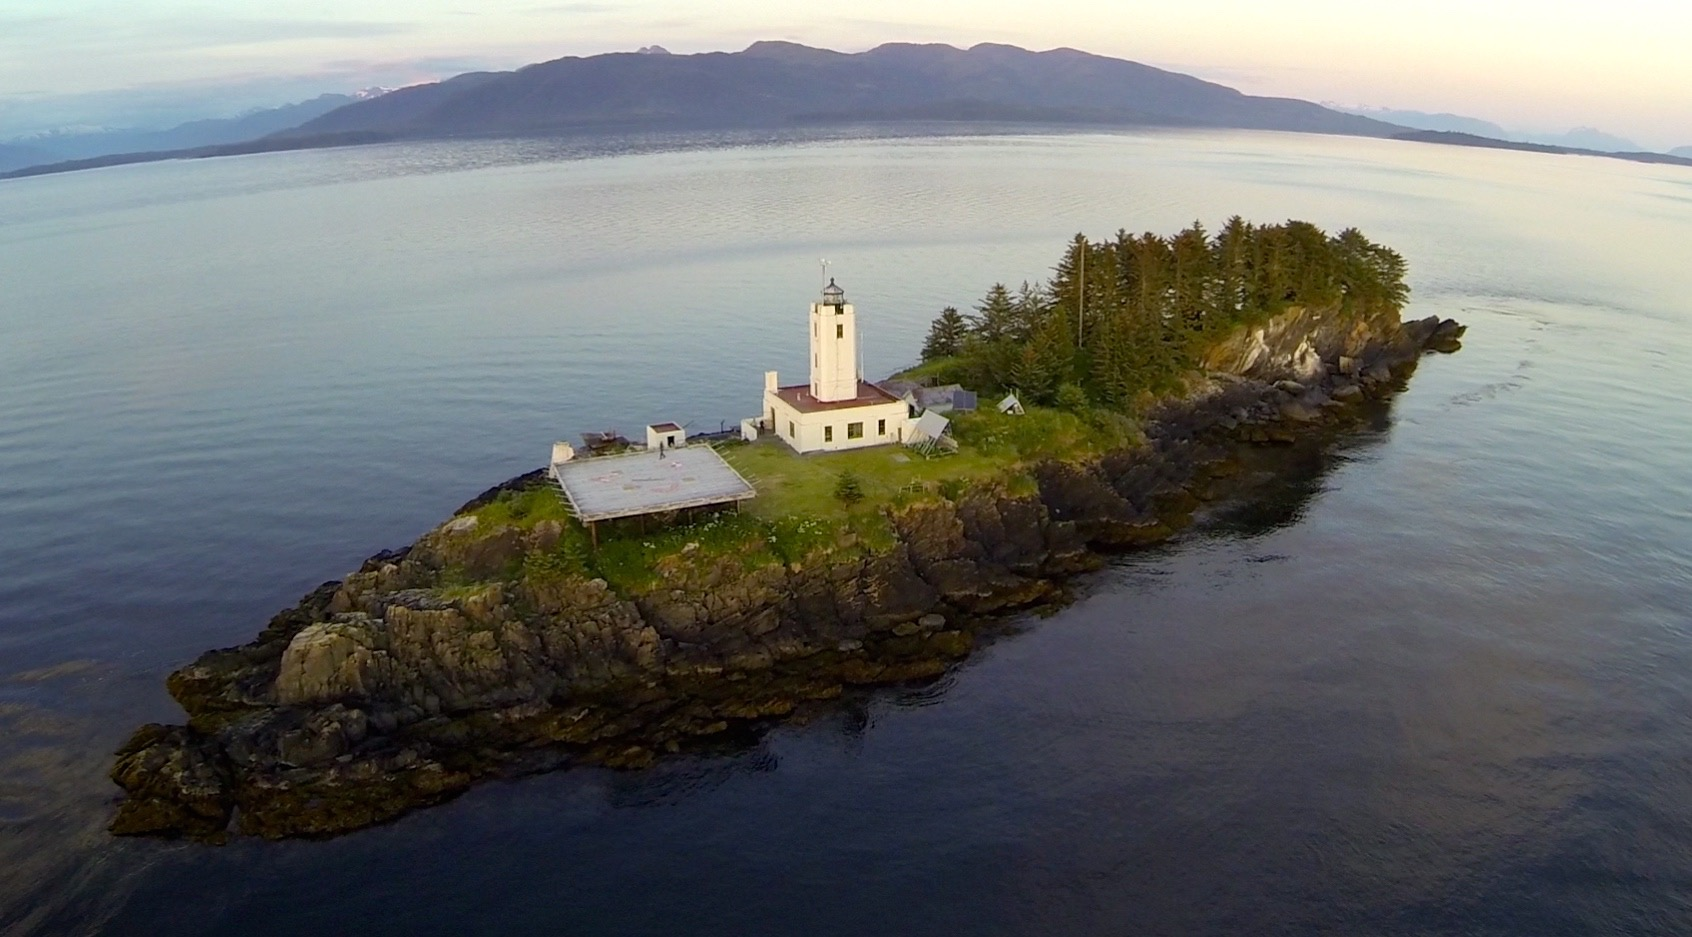 FIVE FINGER LIGHTHOUSE (31 steps from the water to the grass)